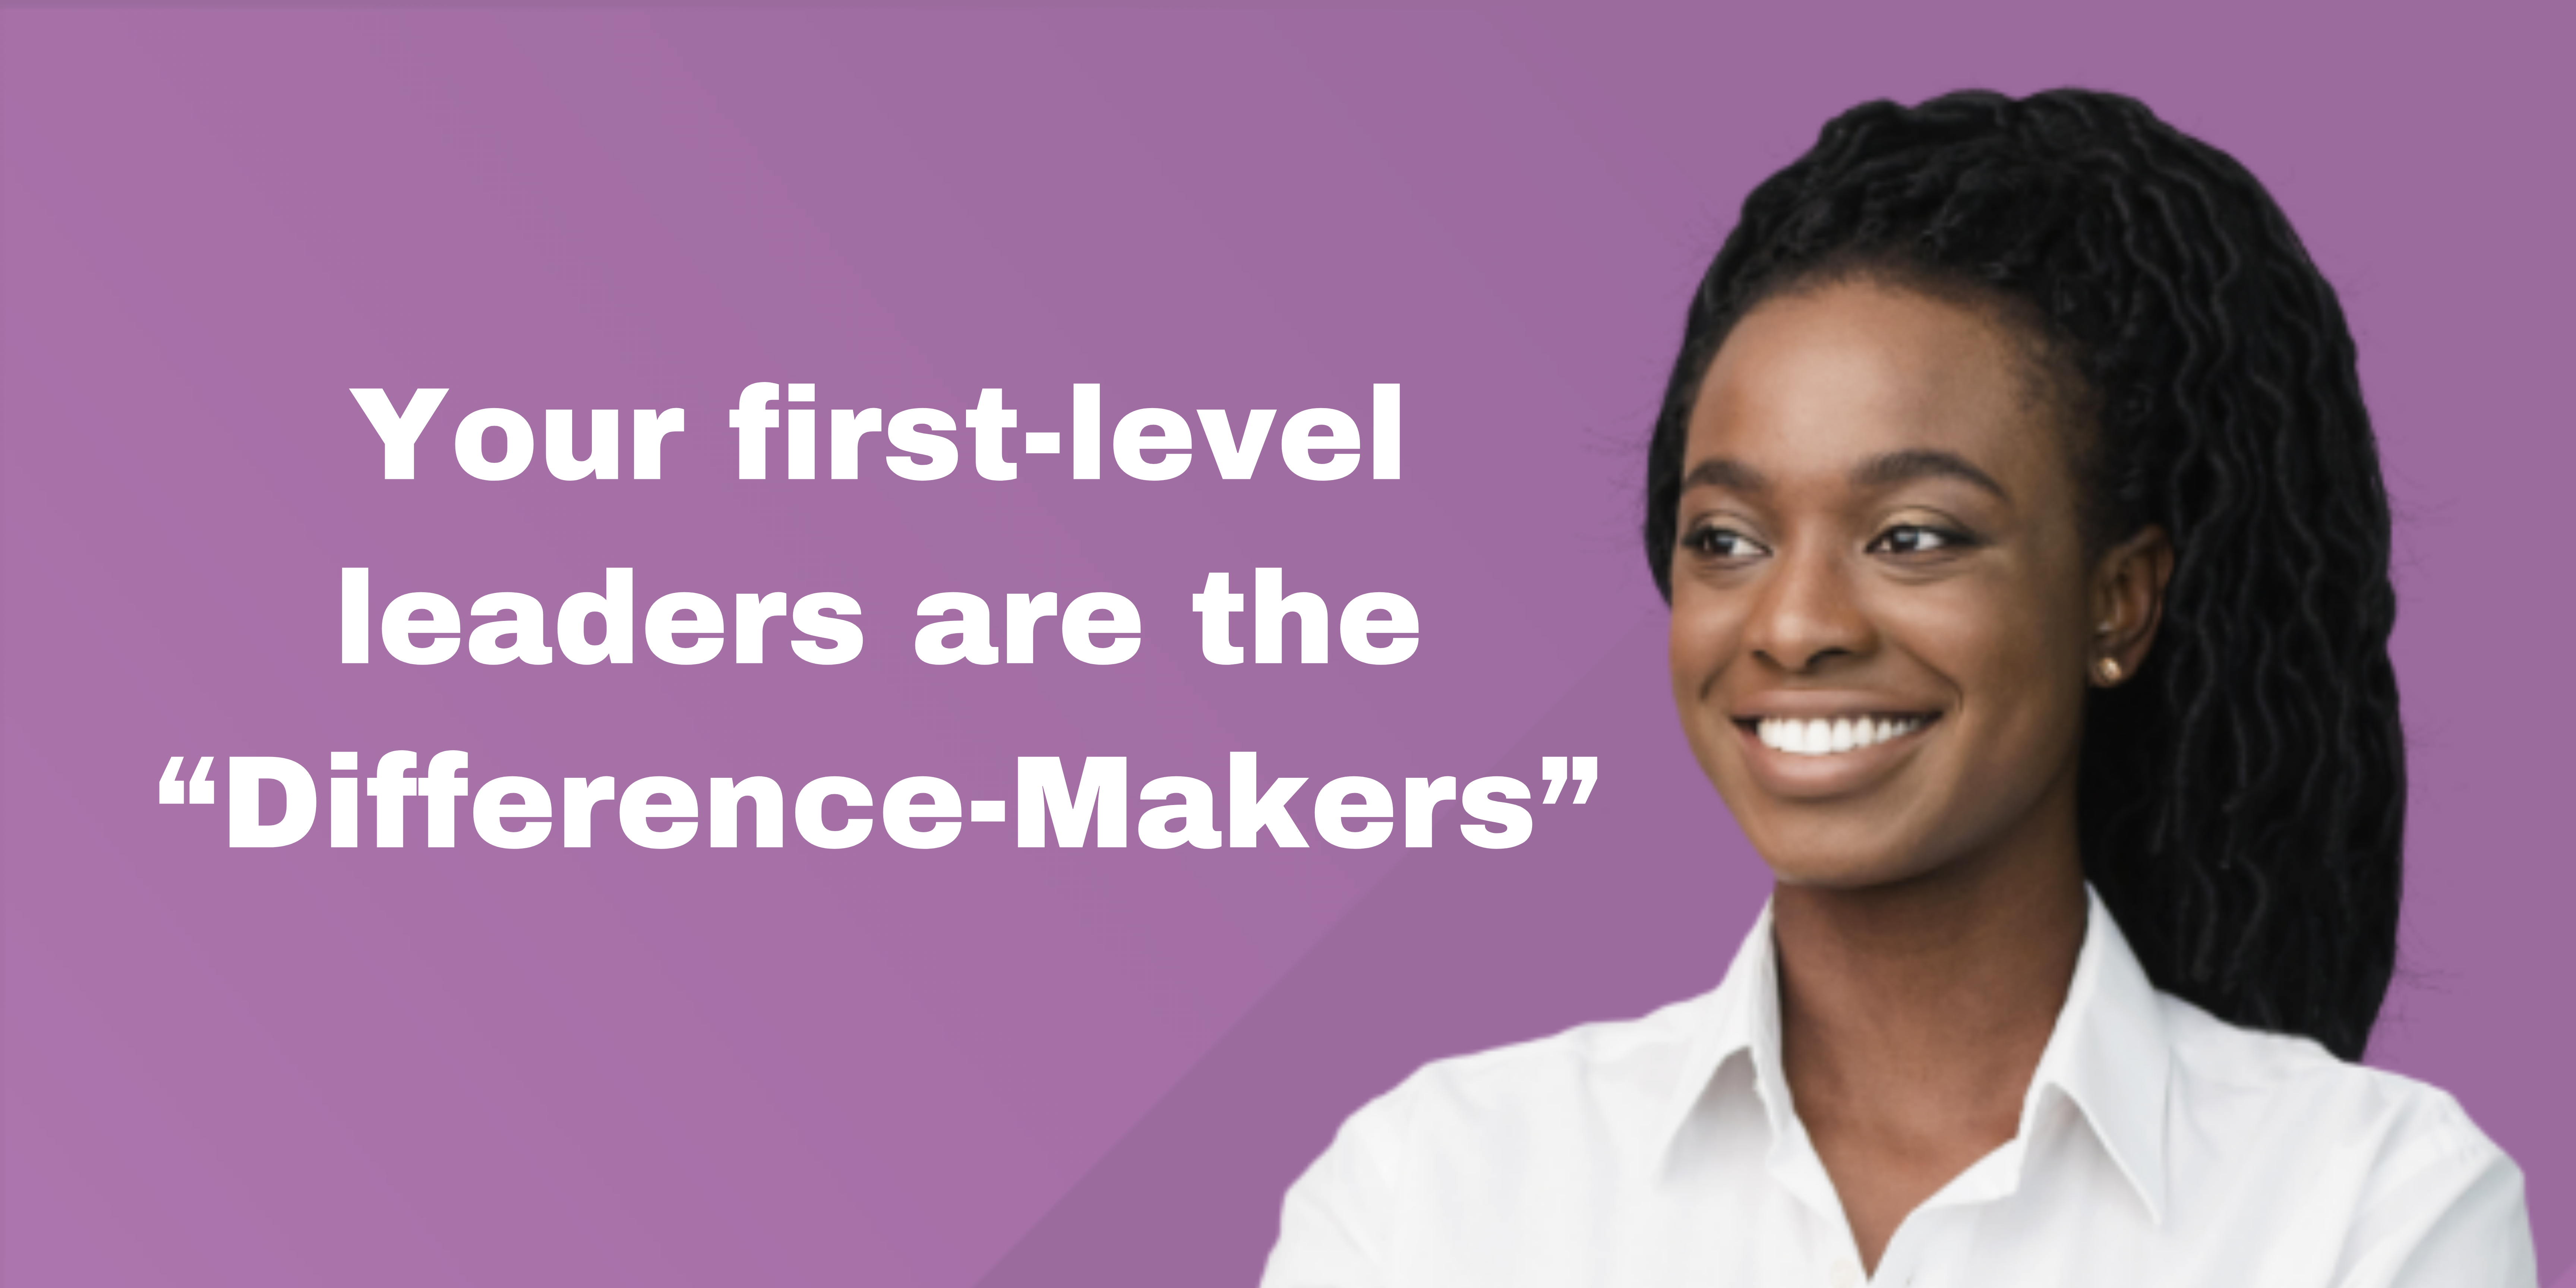 """Your first-level leaders are the """"Difference-Makers"""""""